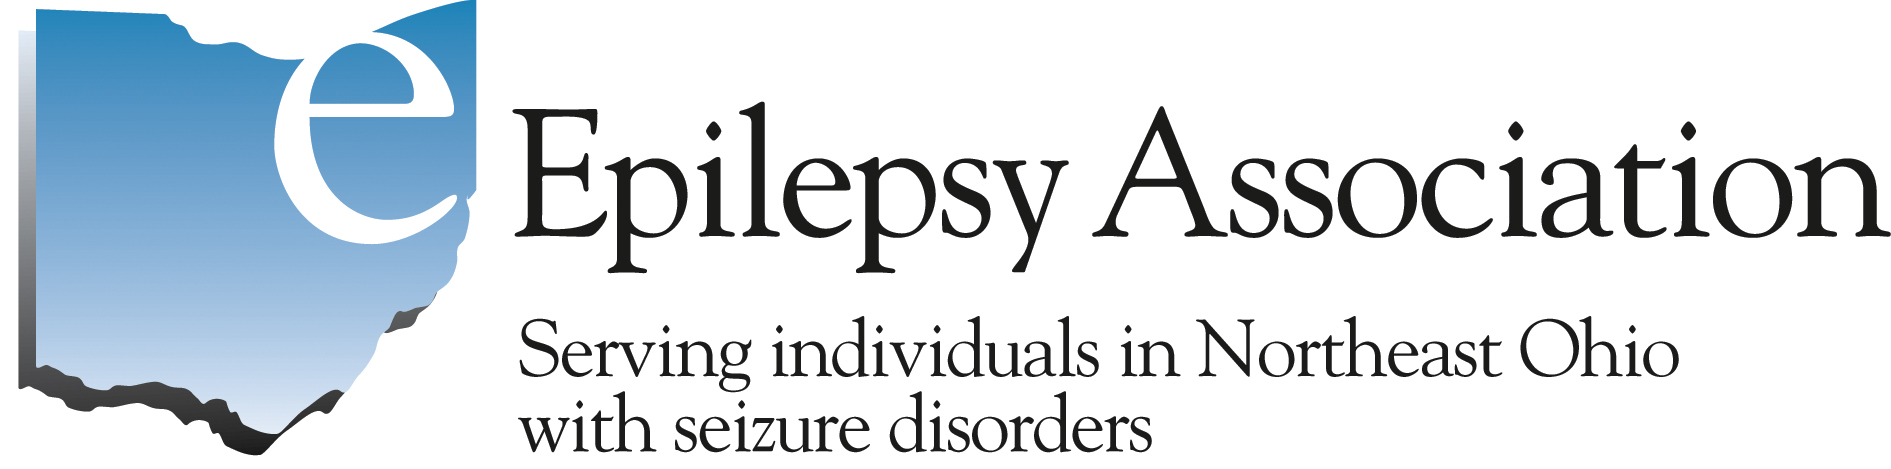 Epilepsy Association: Serving individuals in Northeast Ohio with seizure disorders